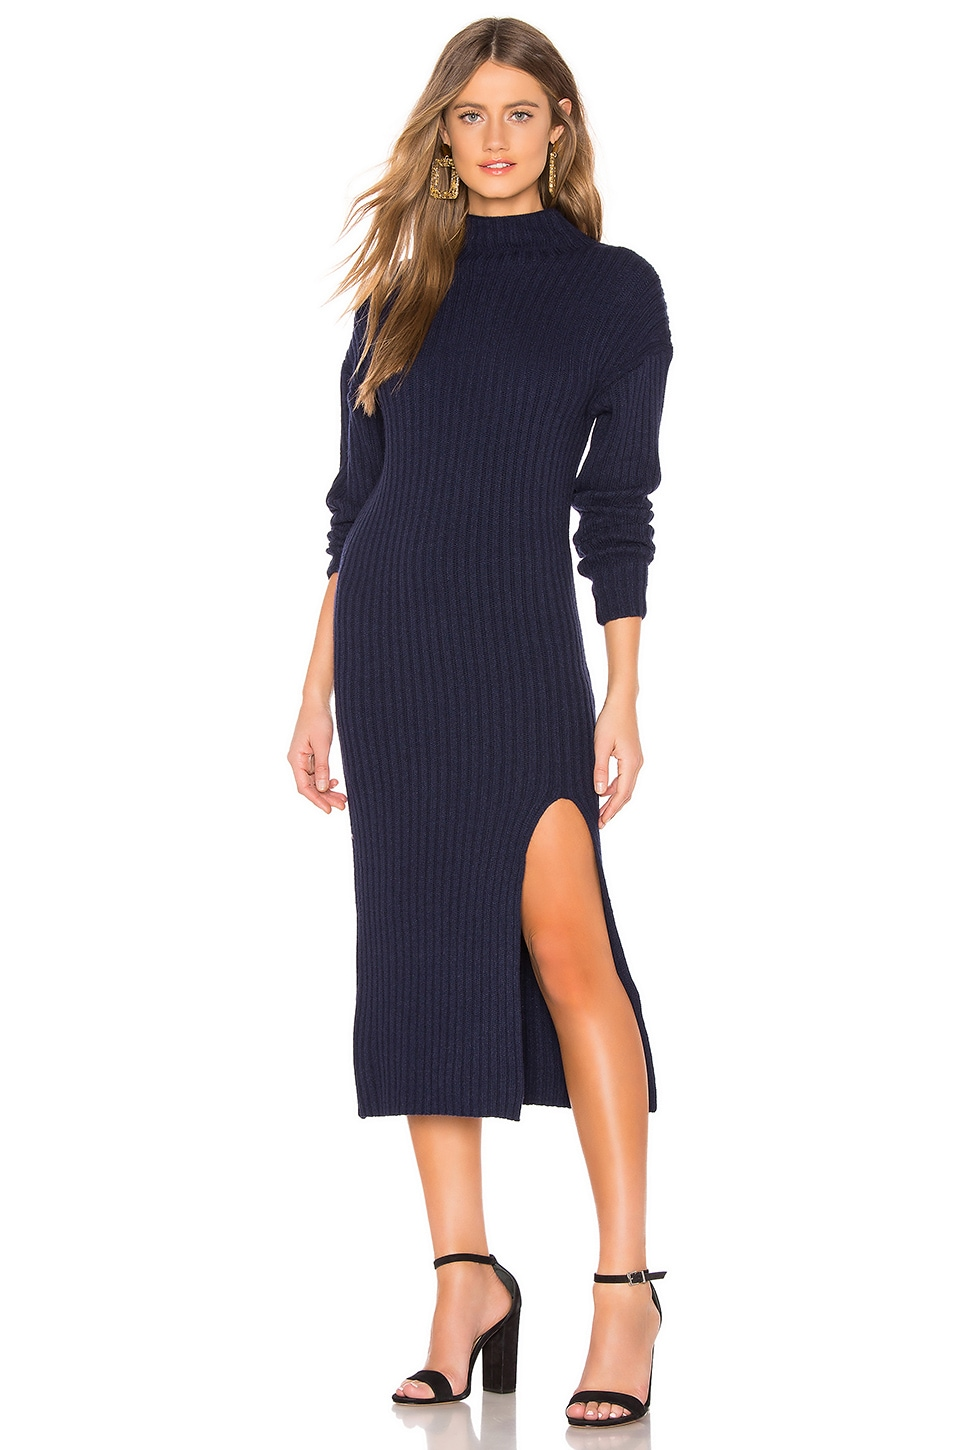 Gabrielle Sweater Dress